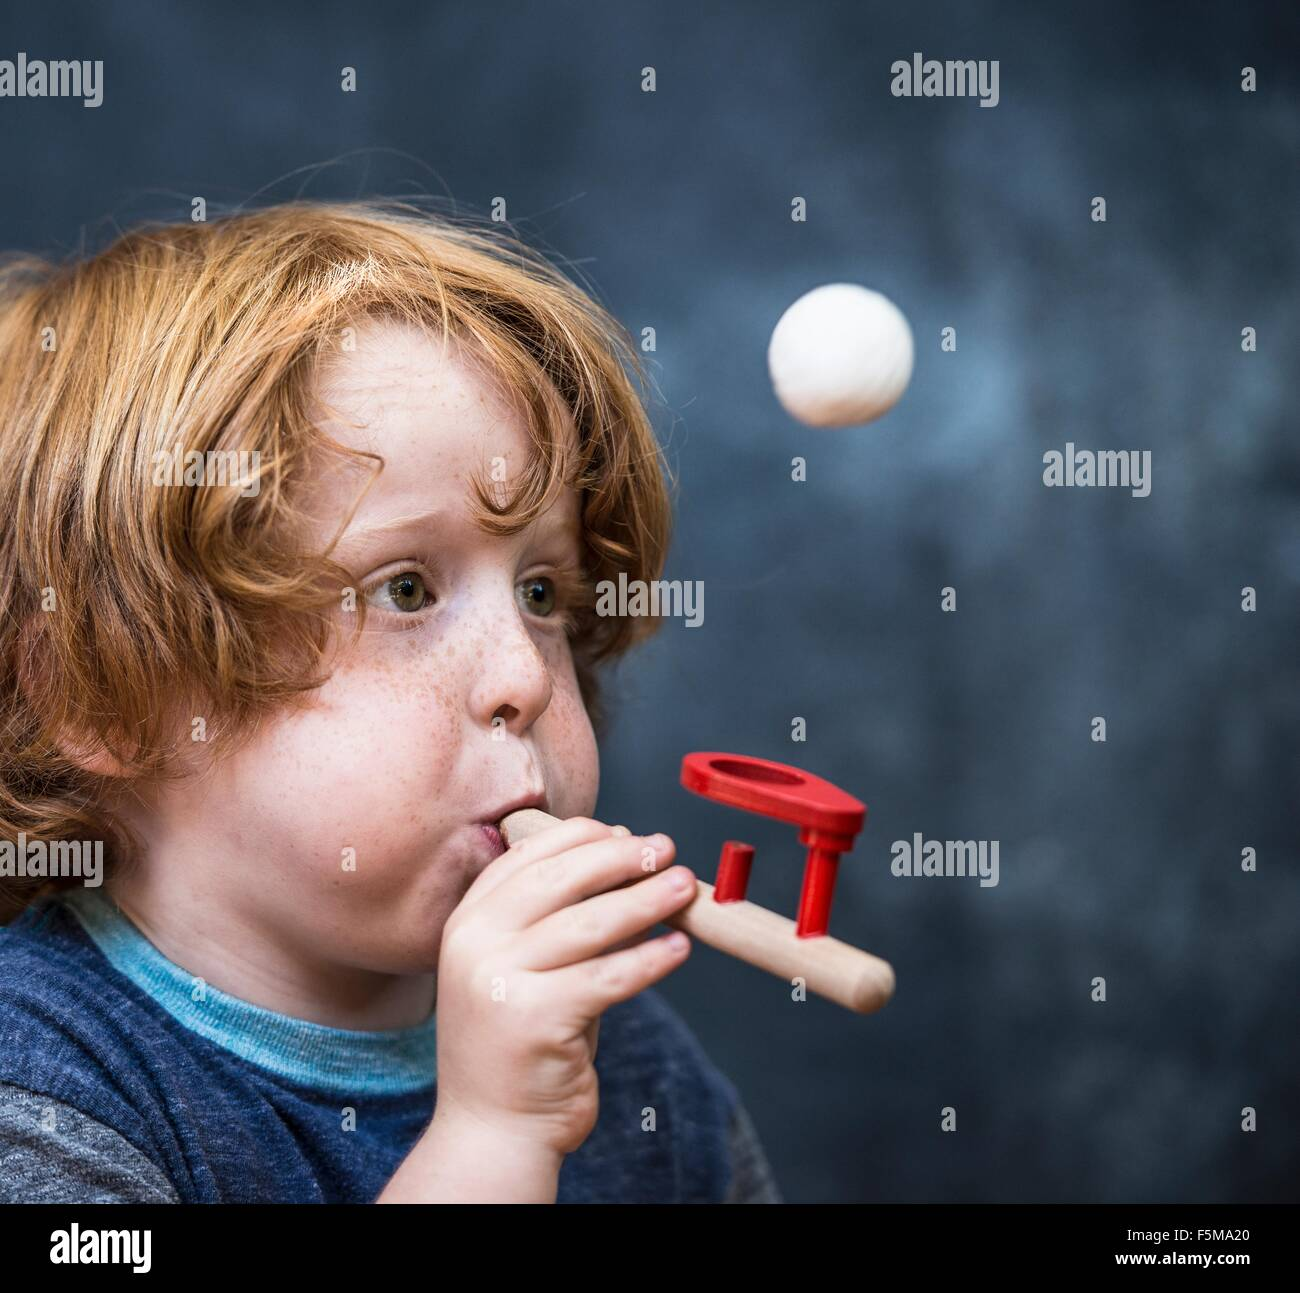 Young boy playing game, blowing ping pong ball in air - Stock Image